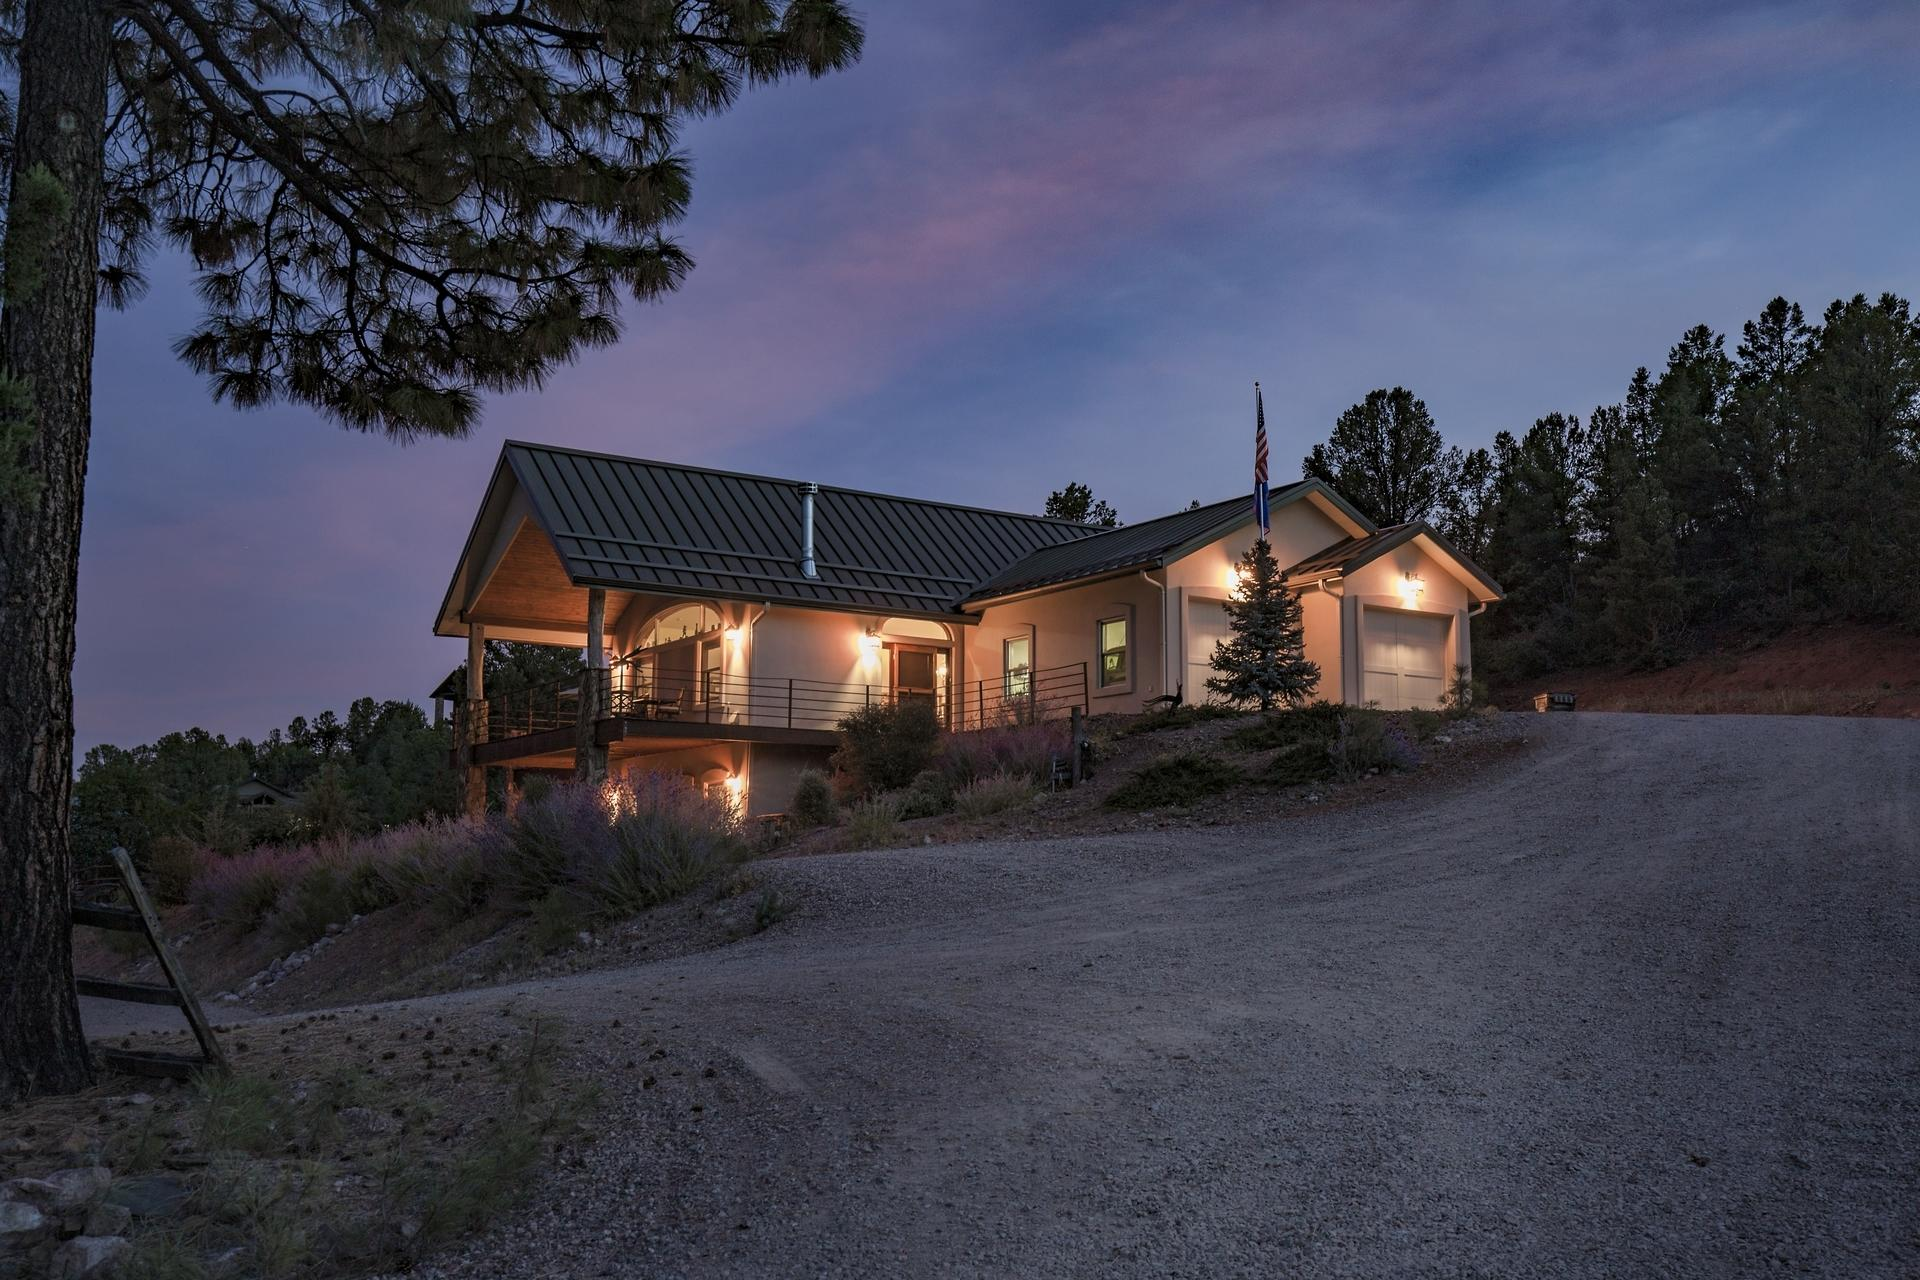 Photo of 1803 E Underwood, Payson, AZ 85541